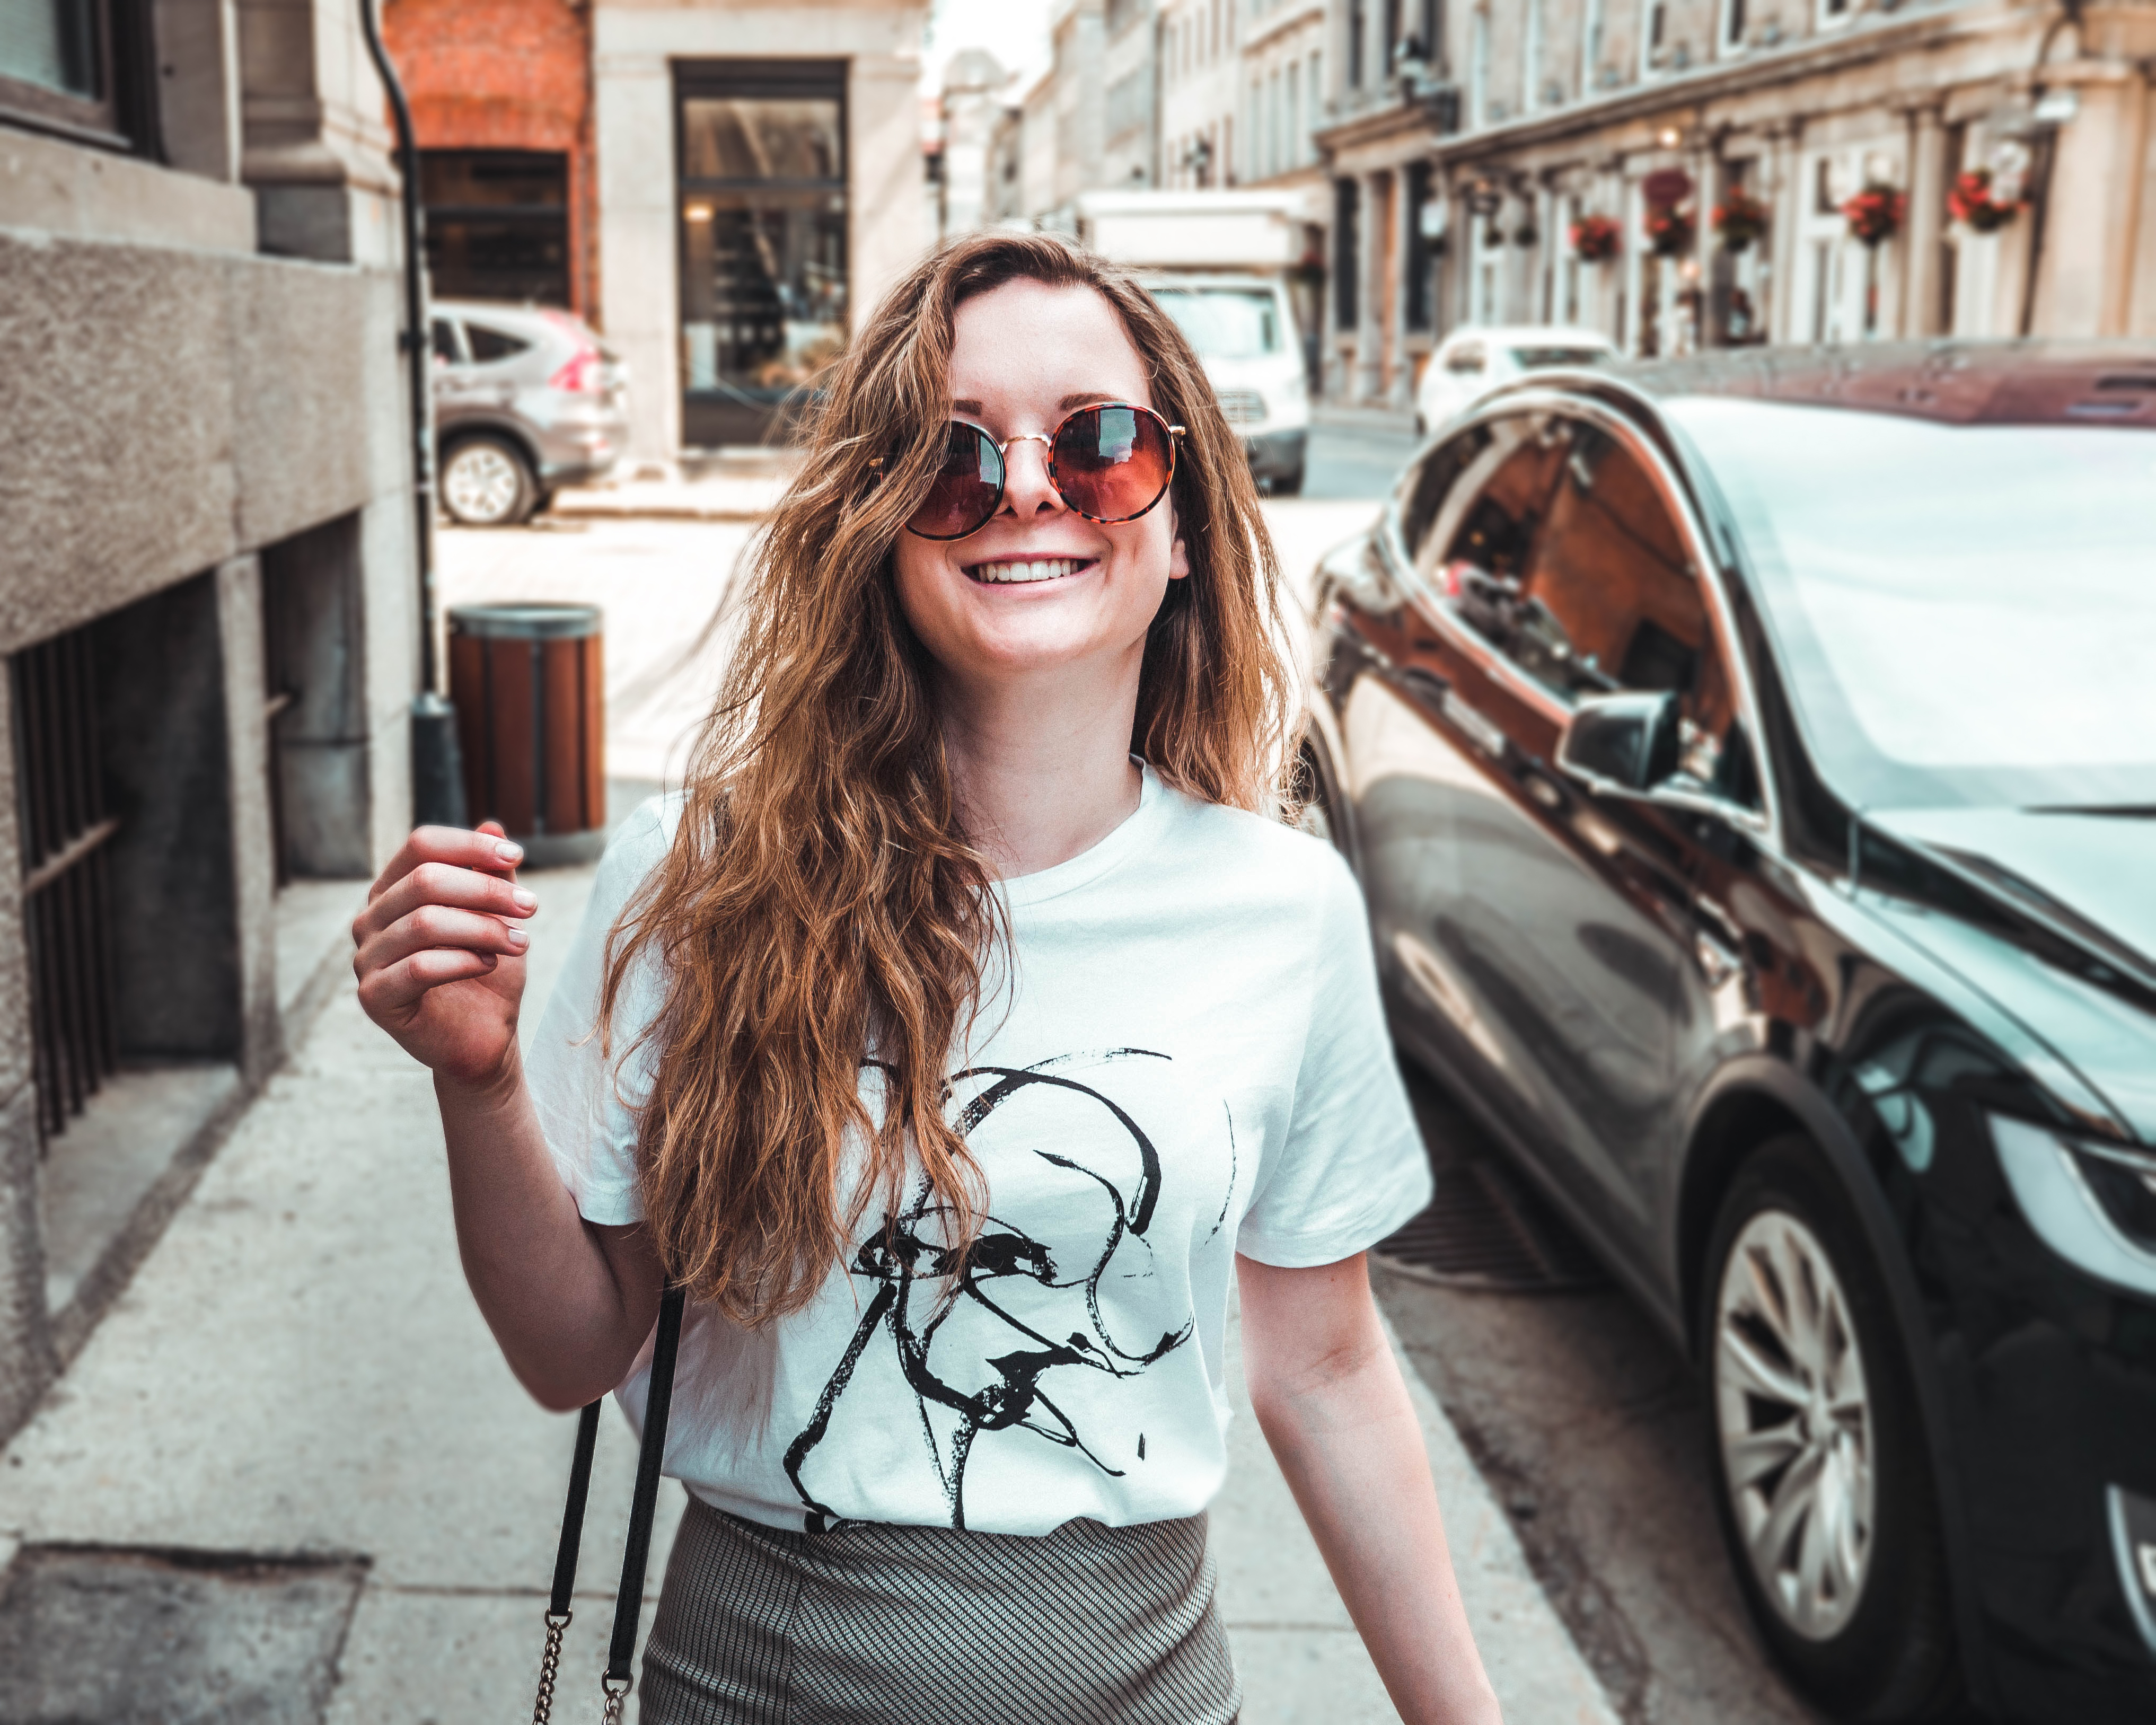 Photo of Smiling Woman in White T-shirt and Sunglasses Walking on Side Walk